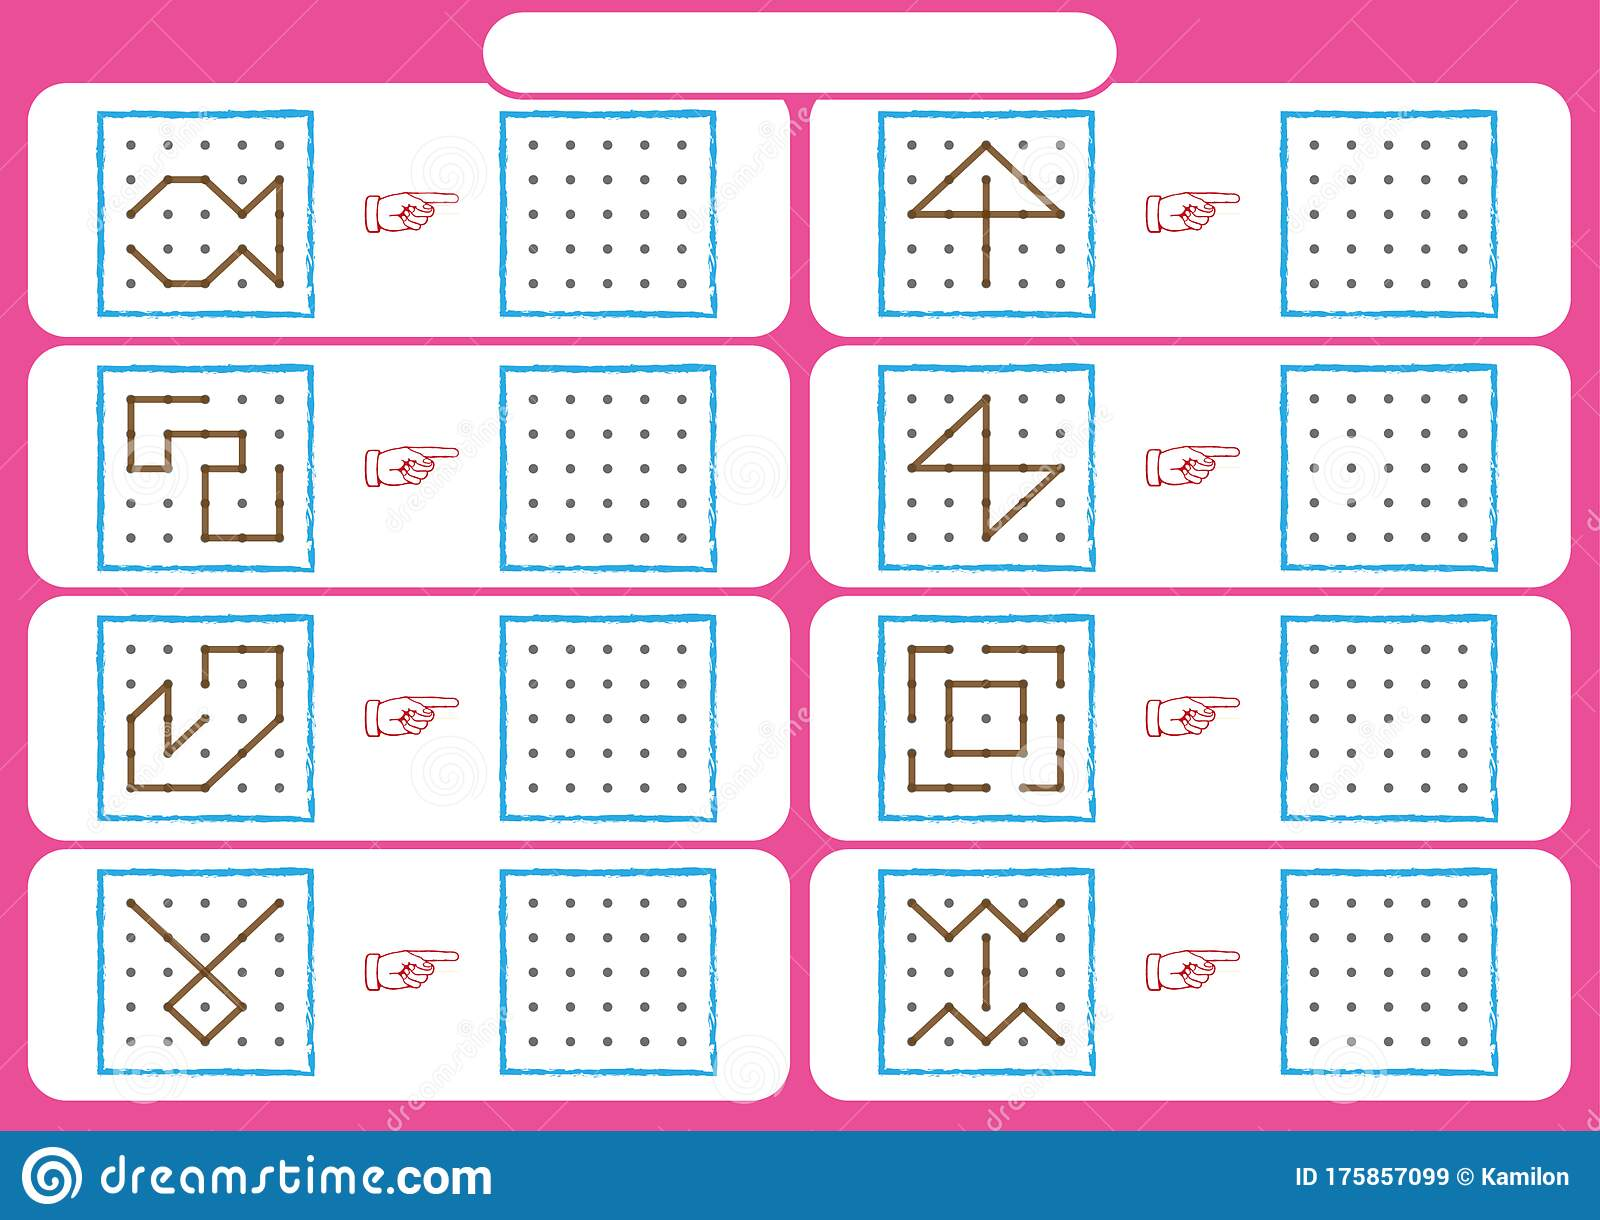 Worksheet For Preschool Kids Dot To Dot Copy Practice